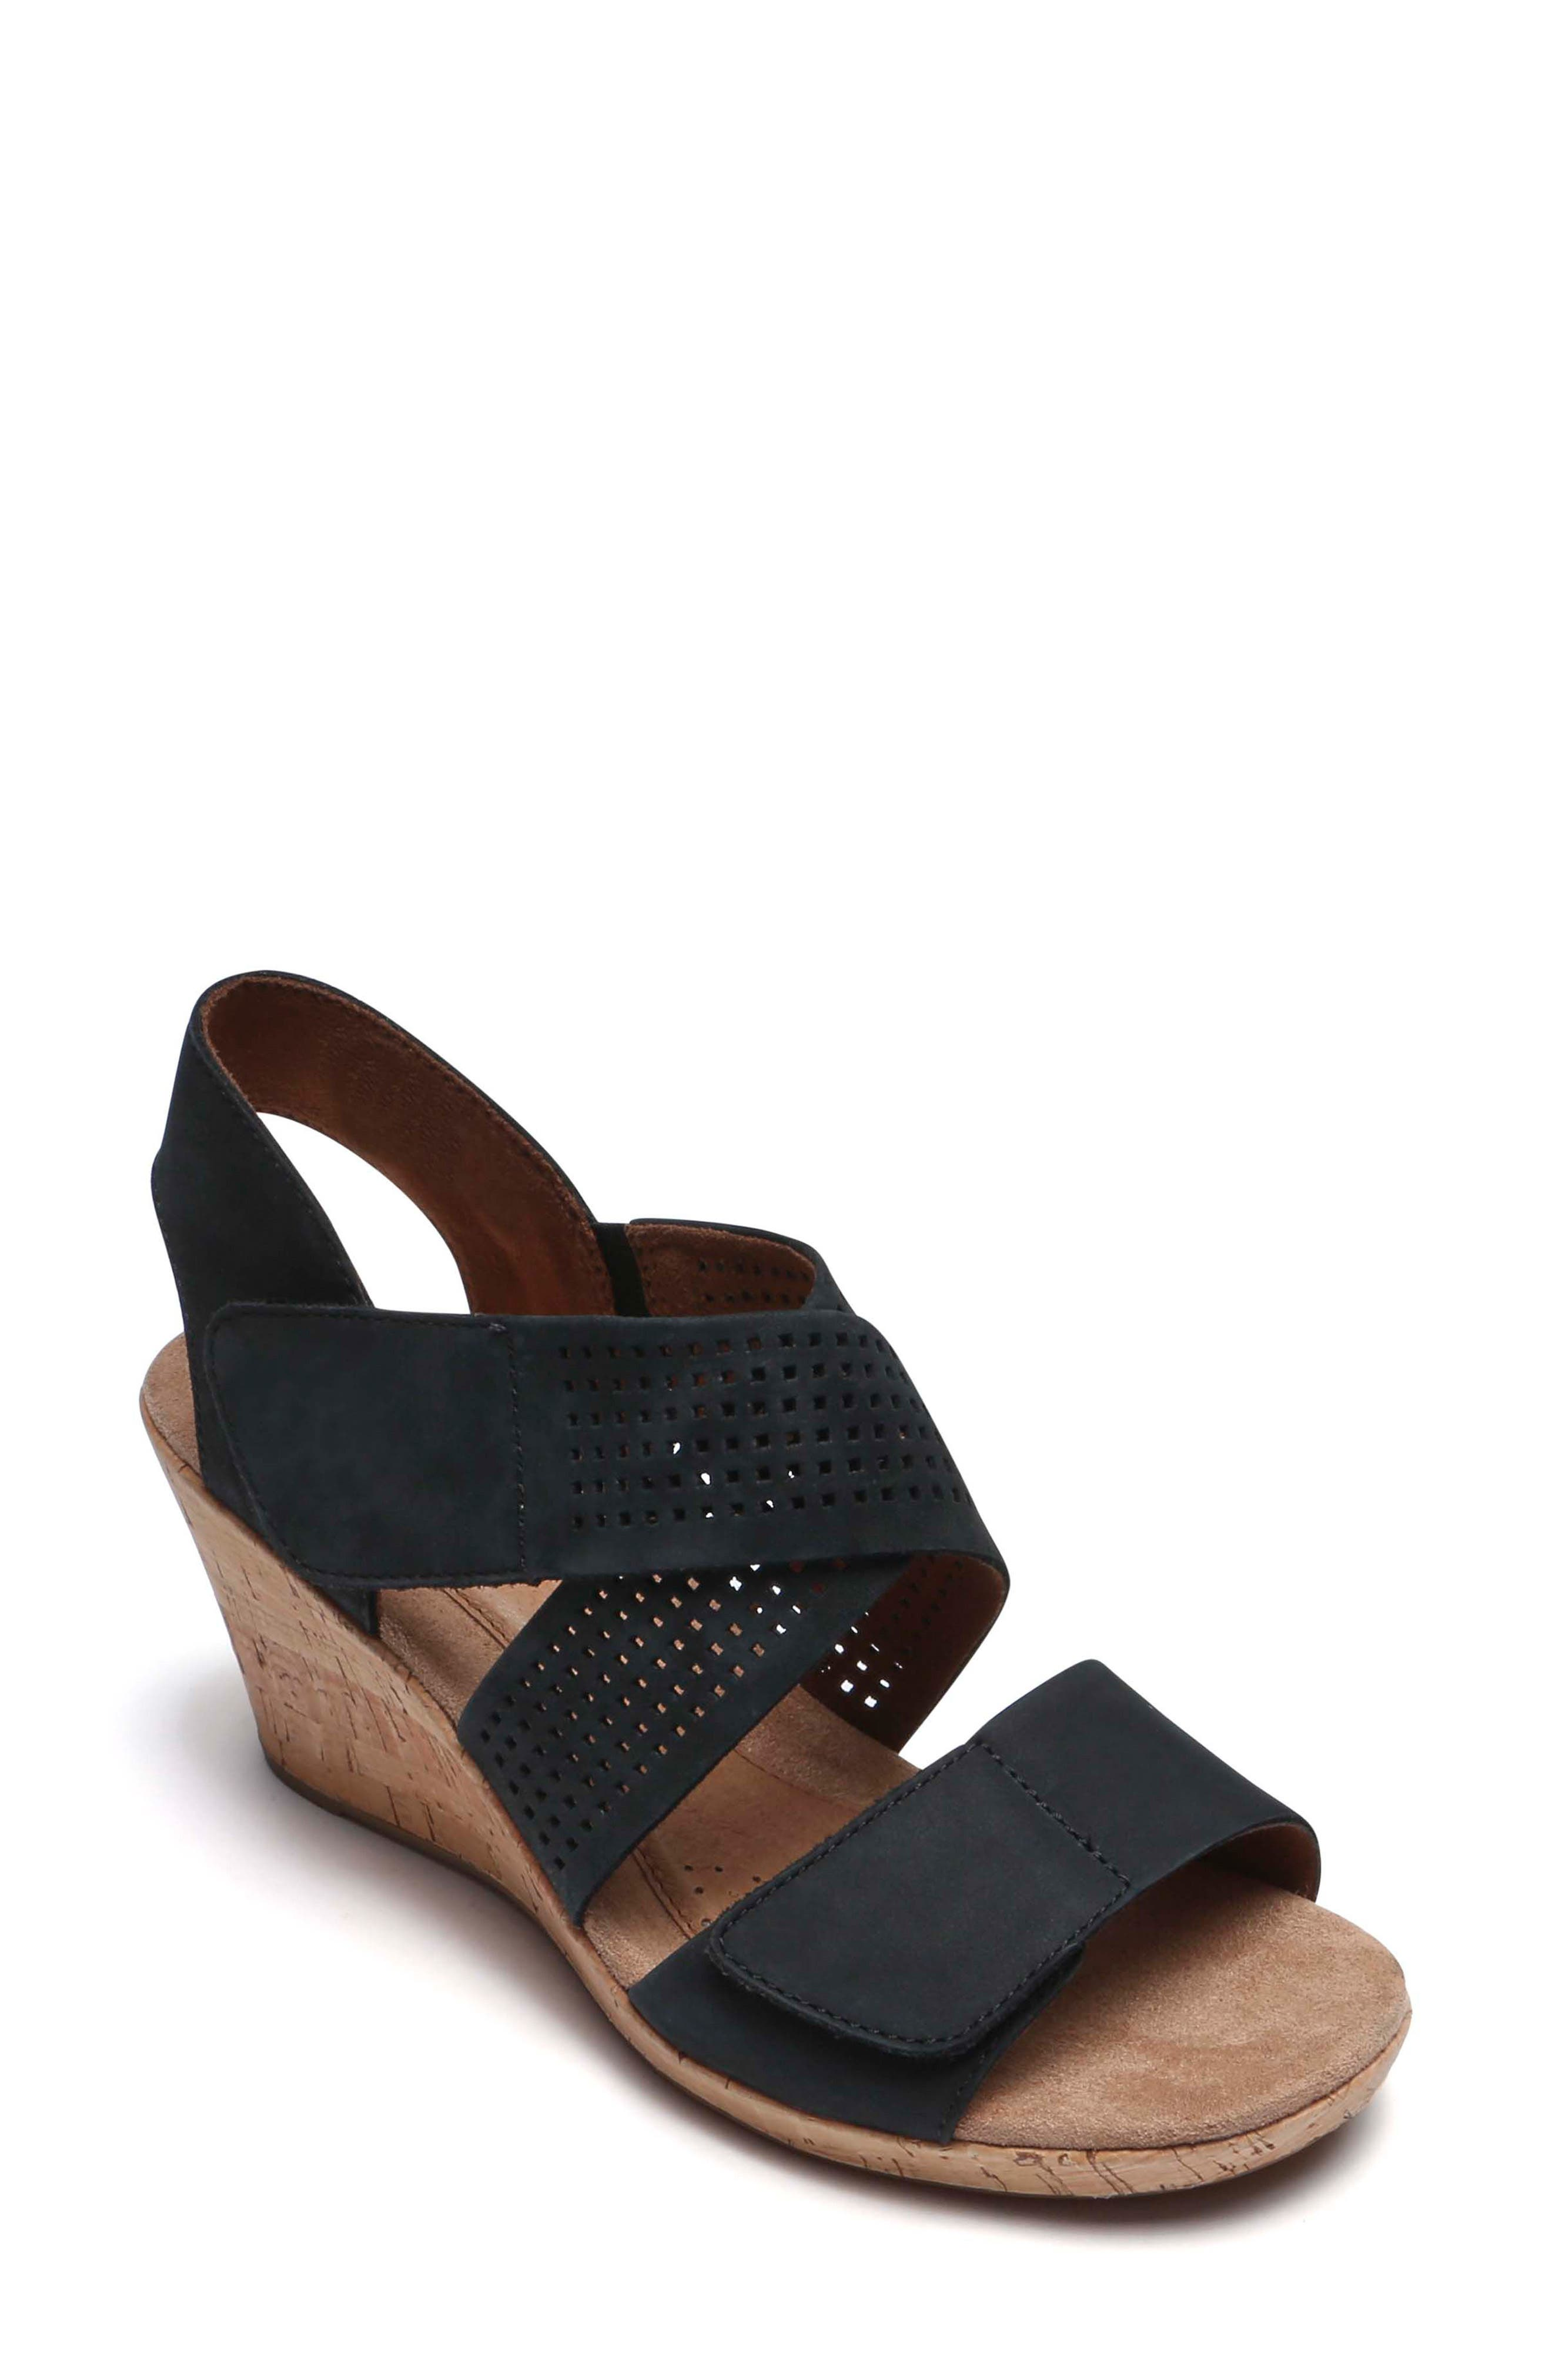 Janna Cross Strap Wedge Sandal,                             Main thumbnail 1, color,                             001